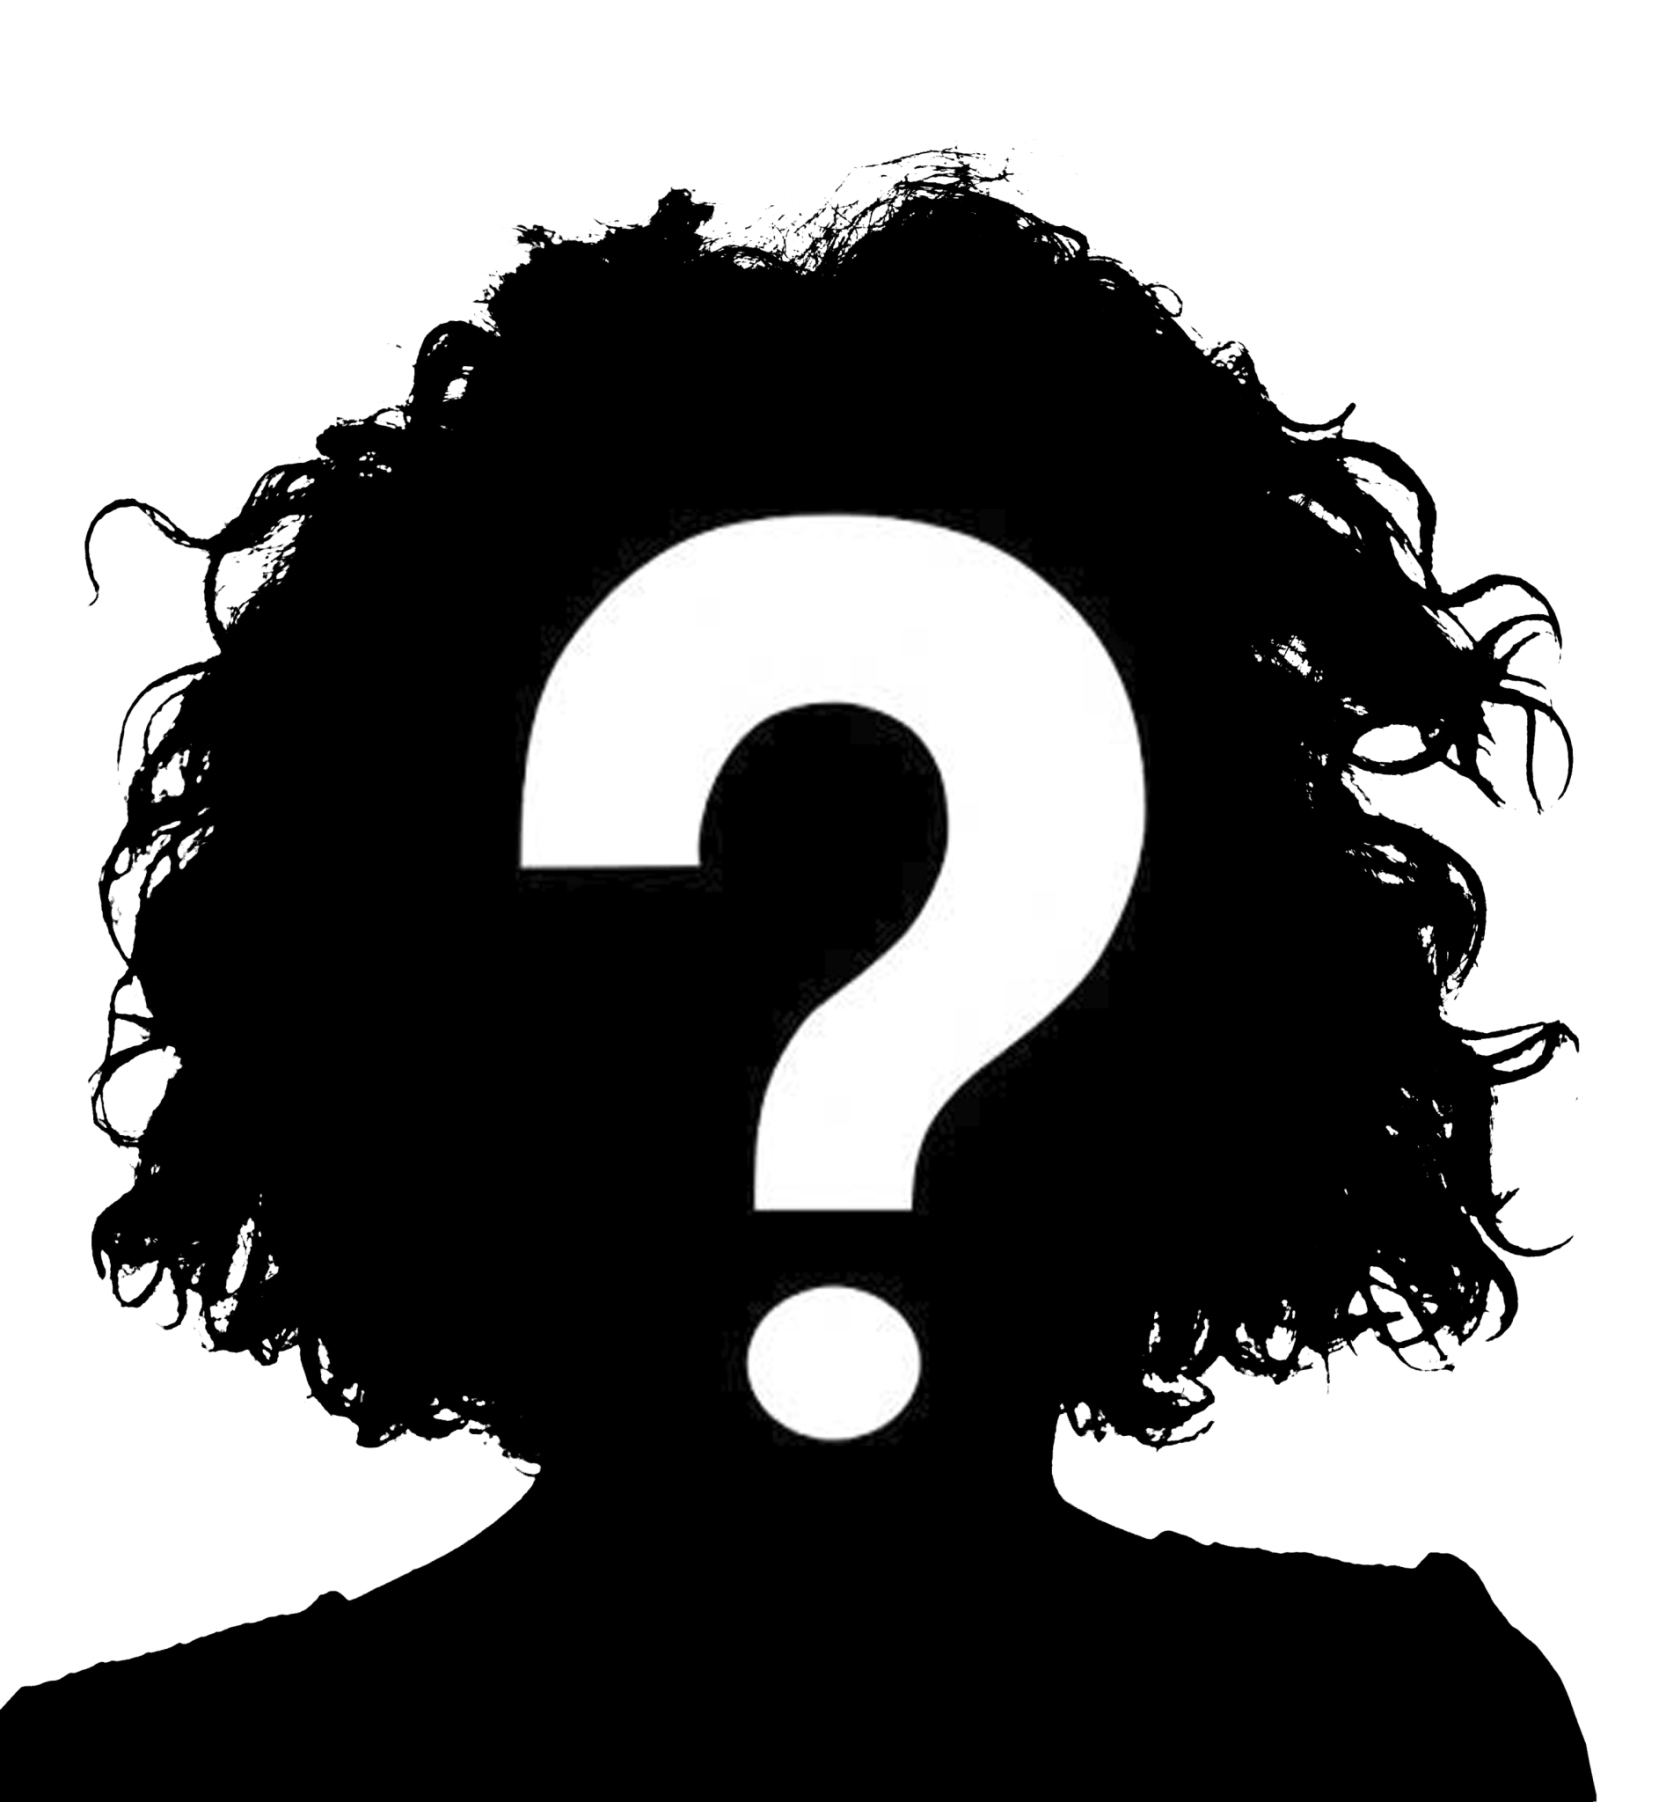 Unknown clipart black and white Person Forensic Exams Cyber art